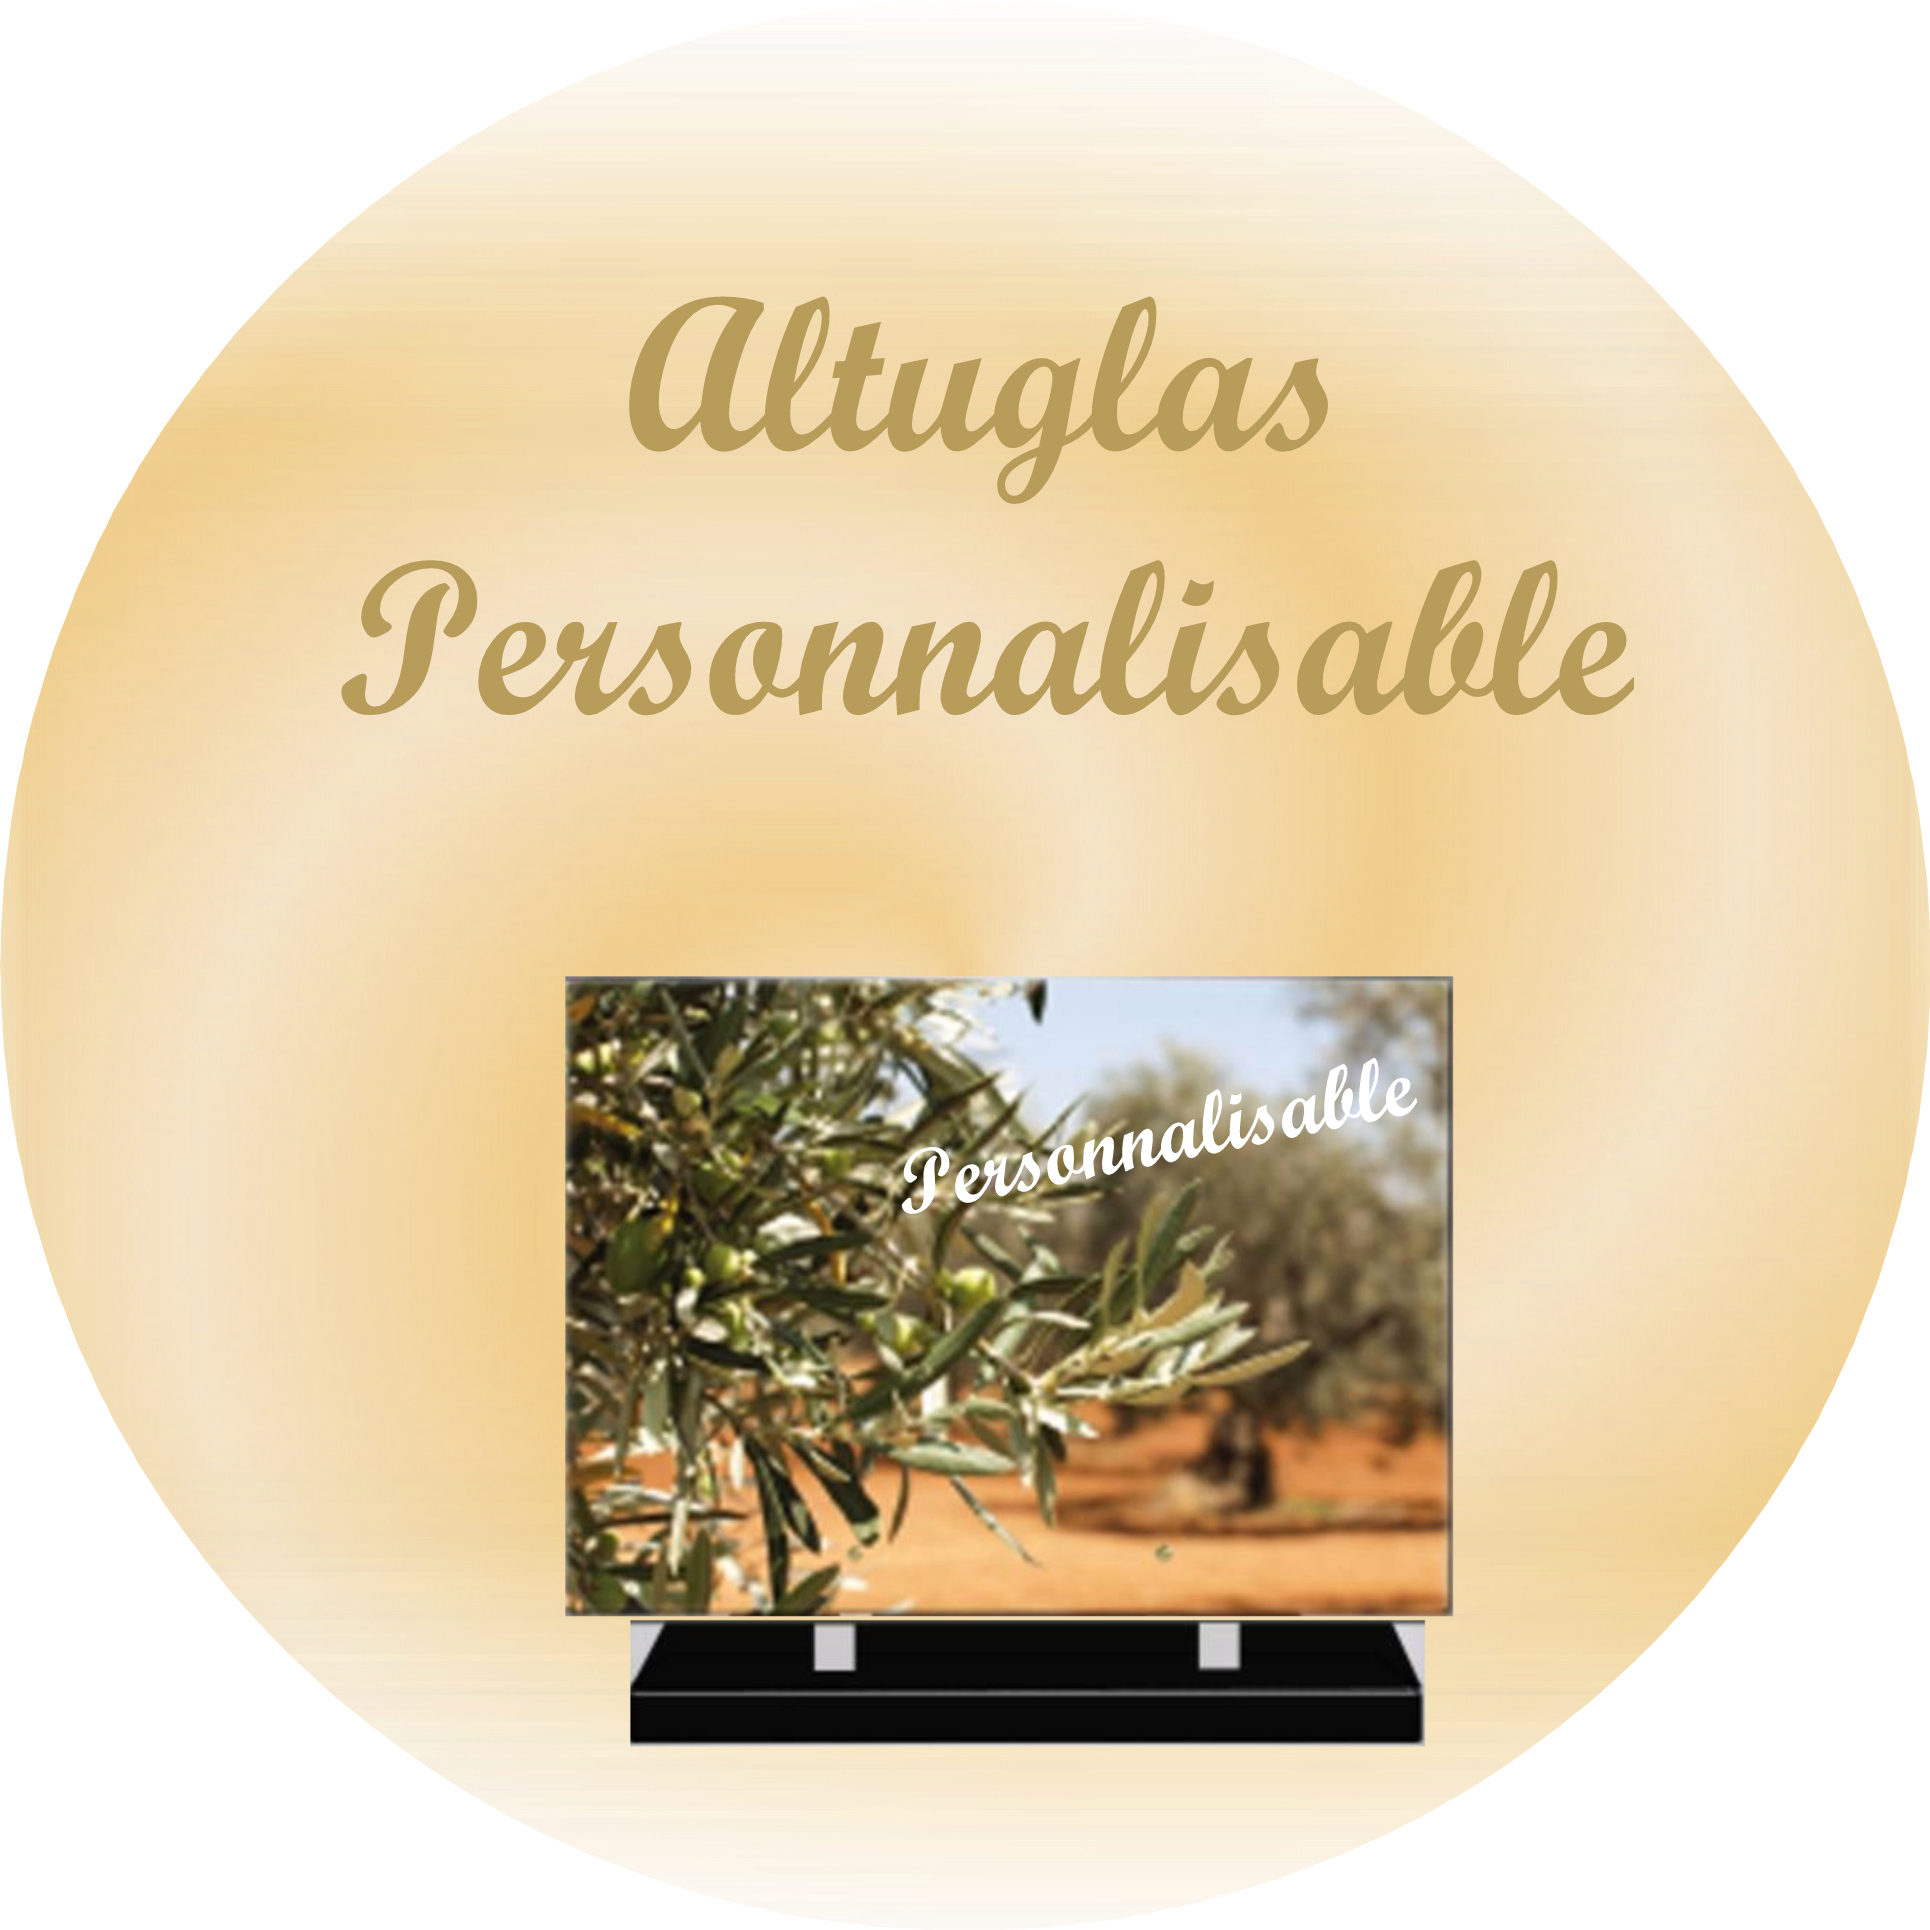 PLAQUES FUNERAIRES MODERNES PERSONNALISABLES RECTANGLE ANNAY